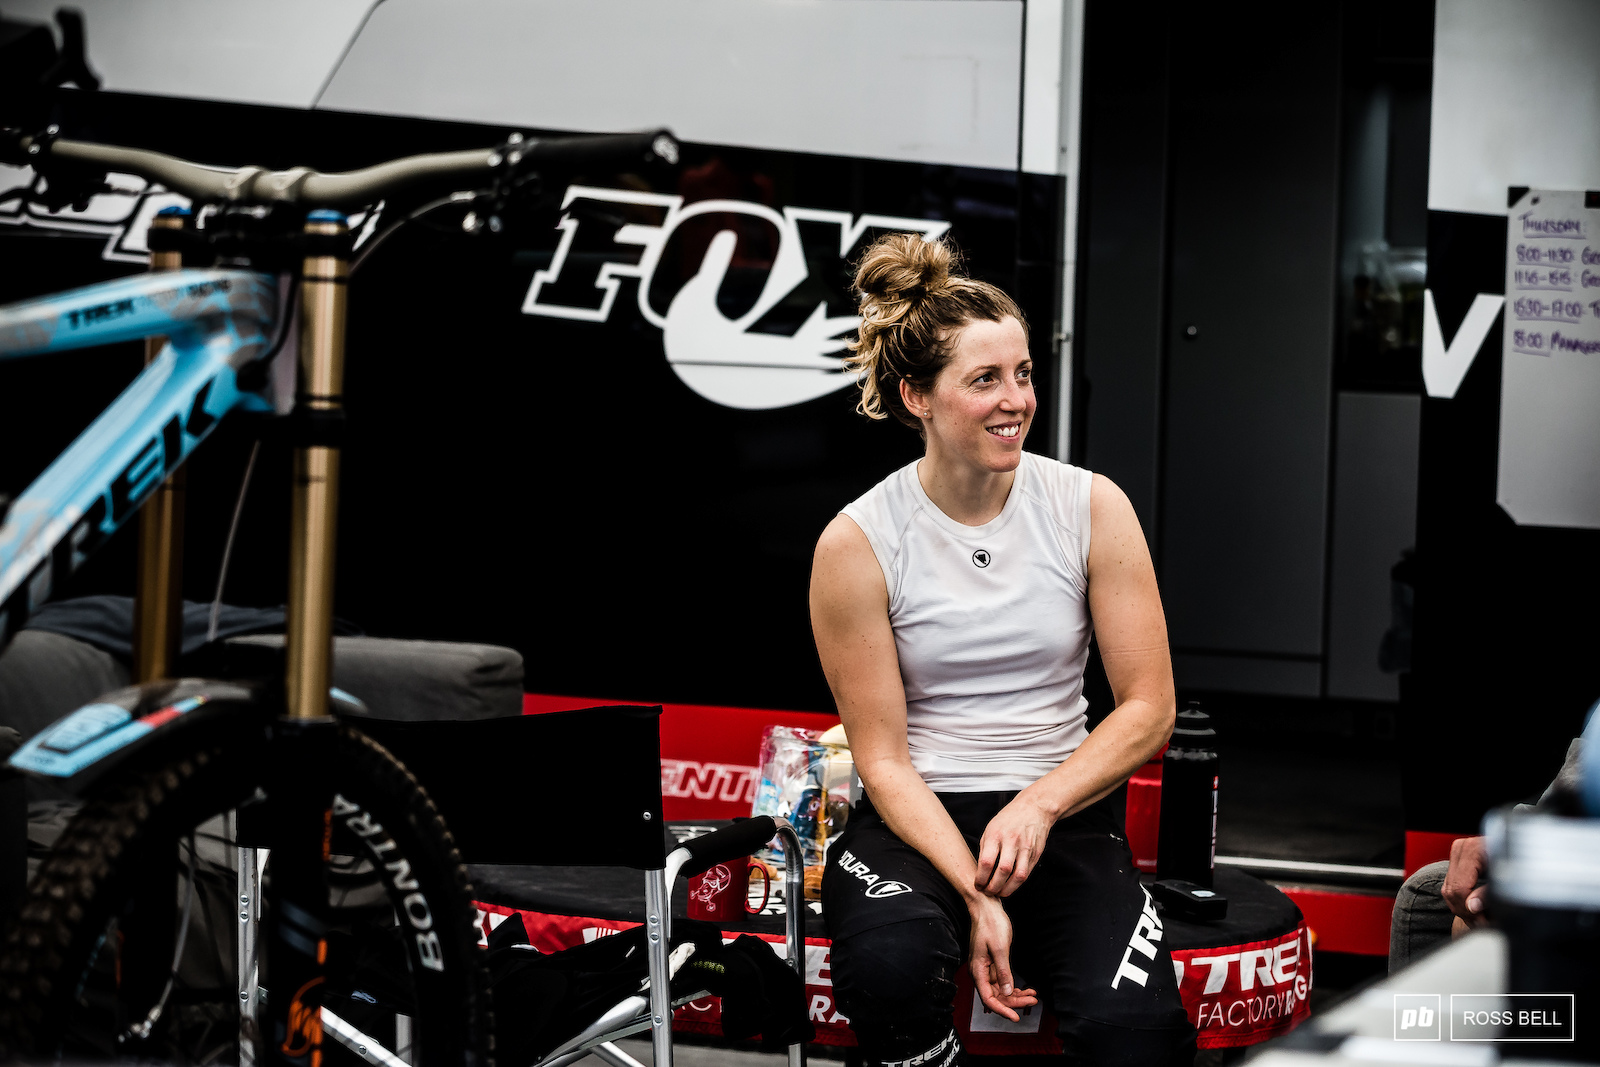 Rachel Atherton seemed happy and relaxed as she starts the final weekend in the quest for the 2018 World Cup overall.